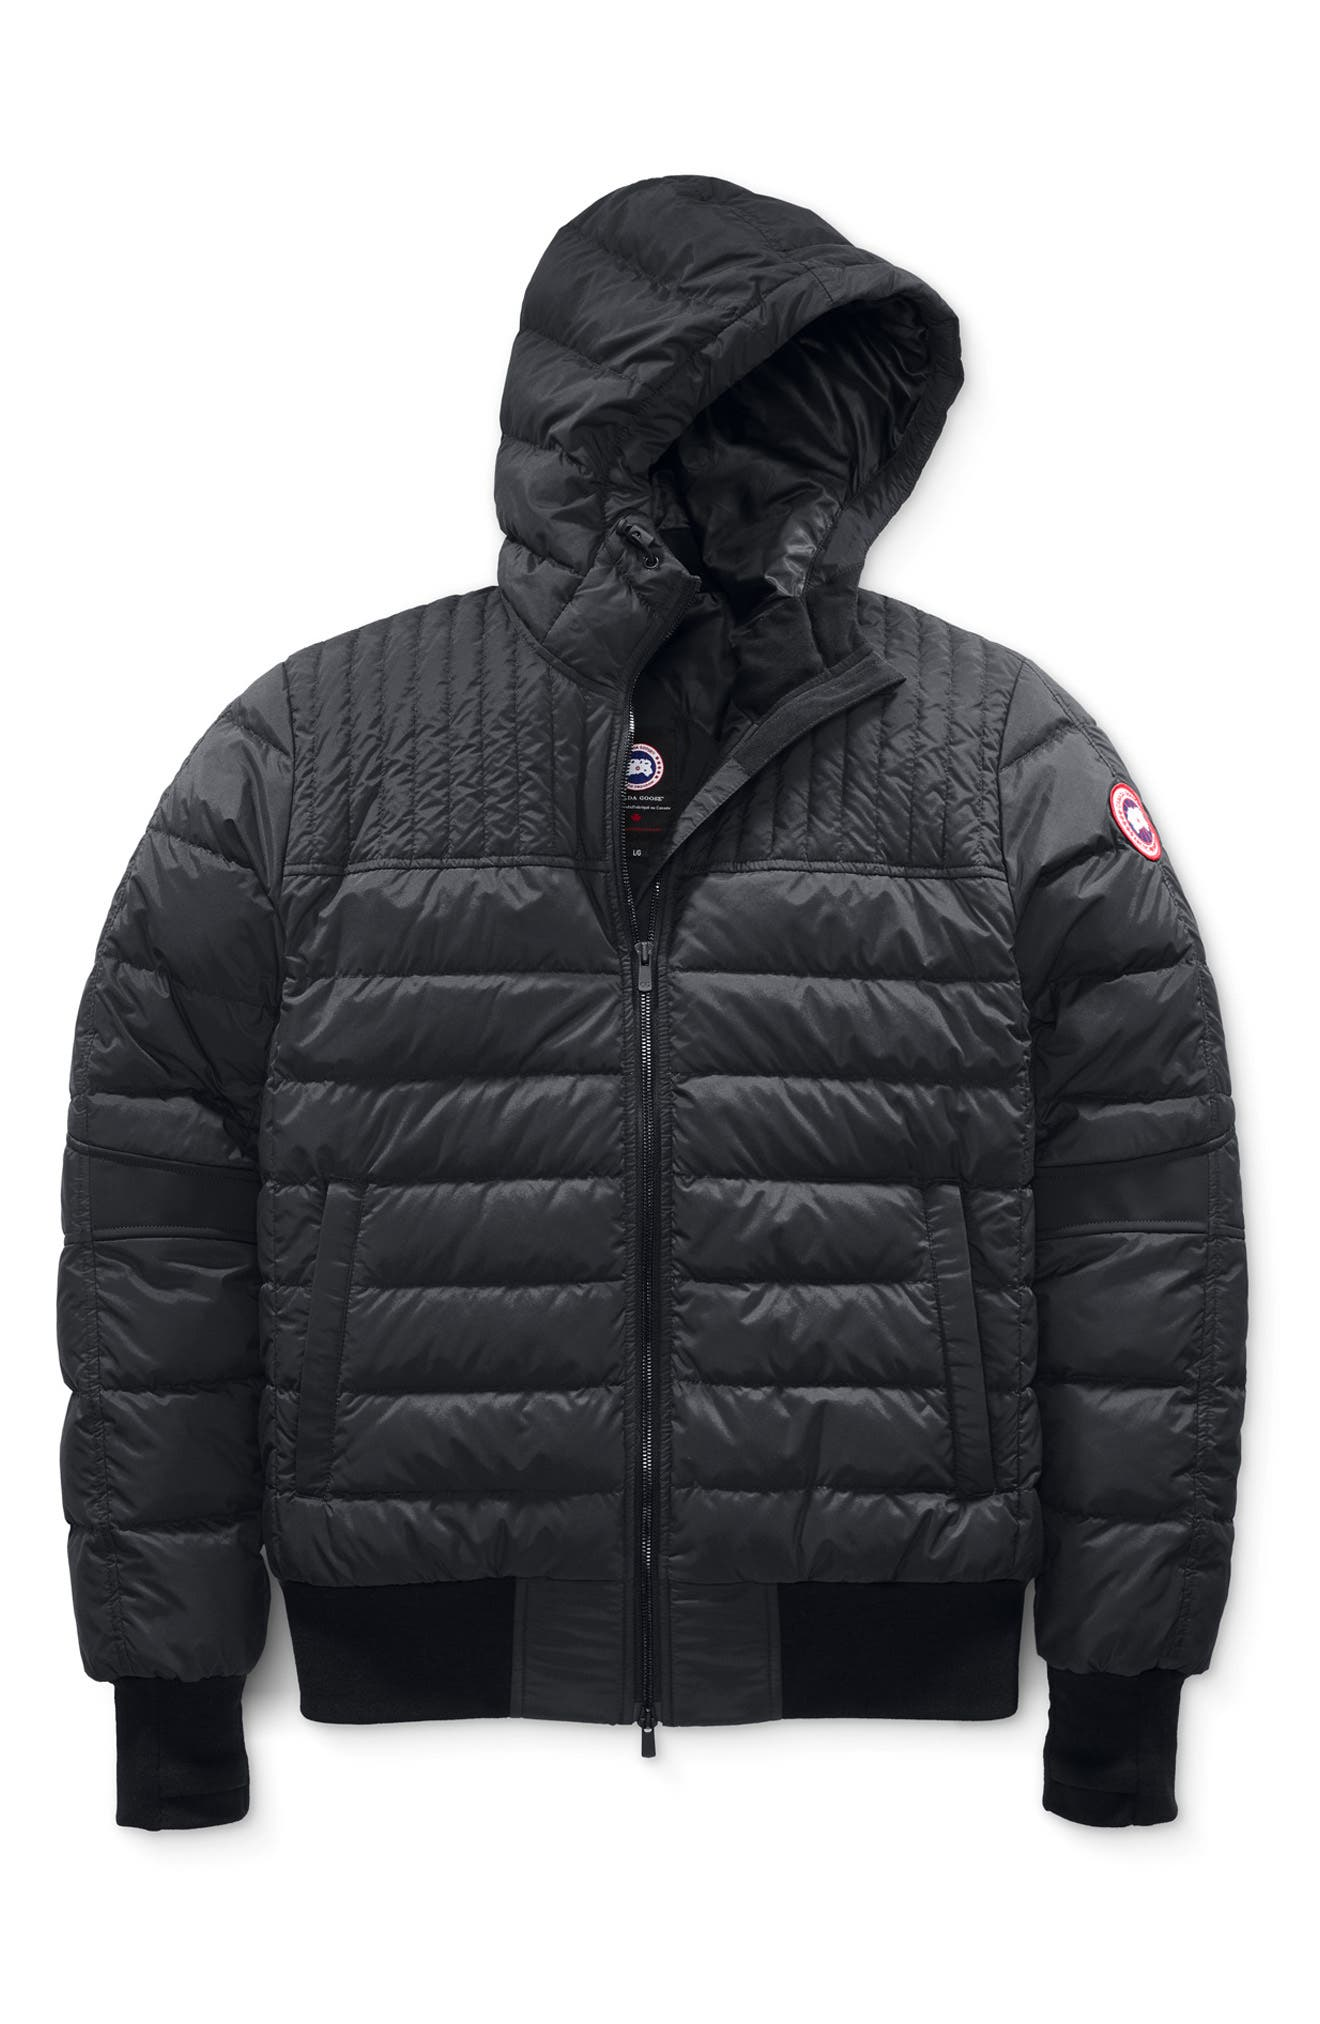 CANADA GOOSE, Cabri Hooded Packable Down Jacket, Main thumbnail 1, color, BLACK